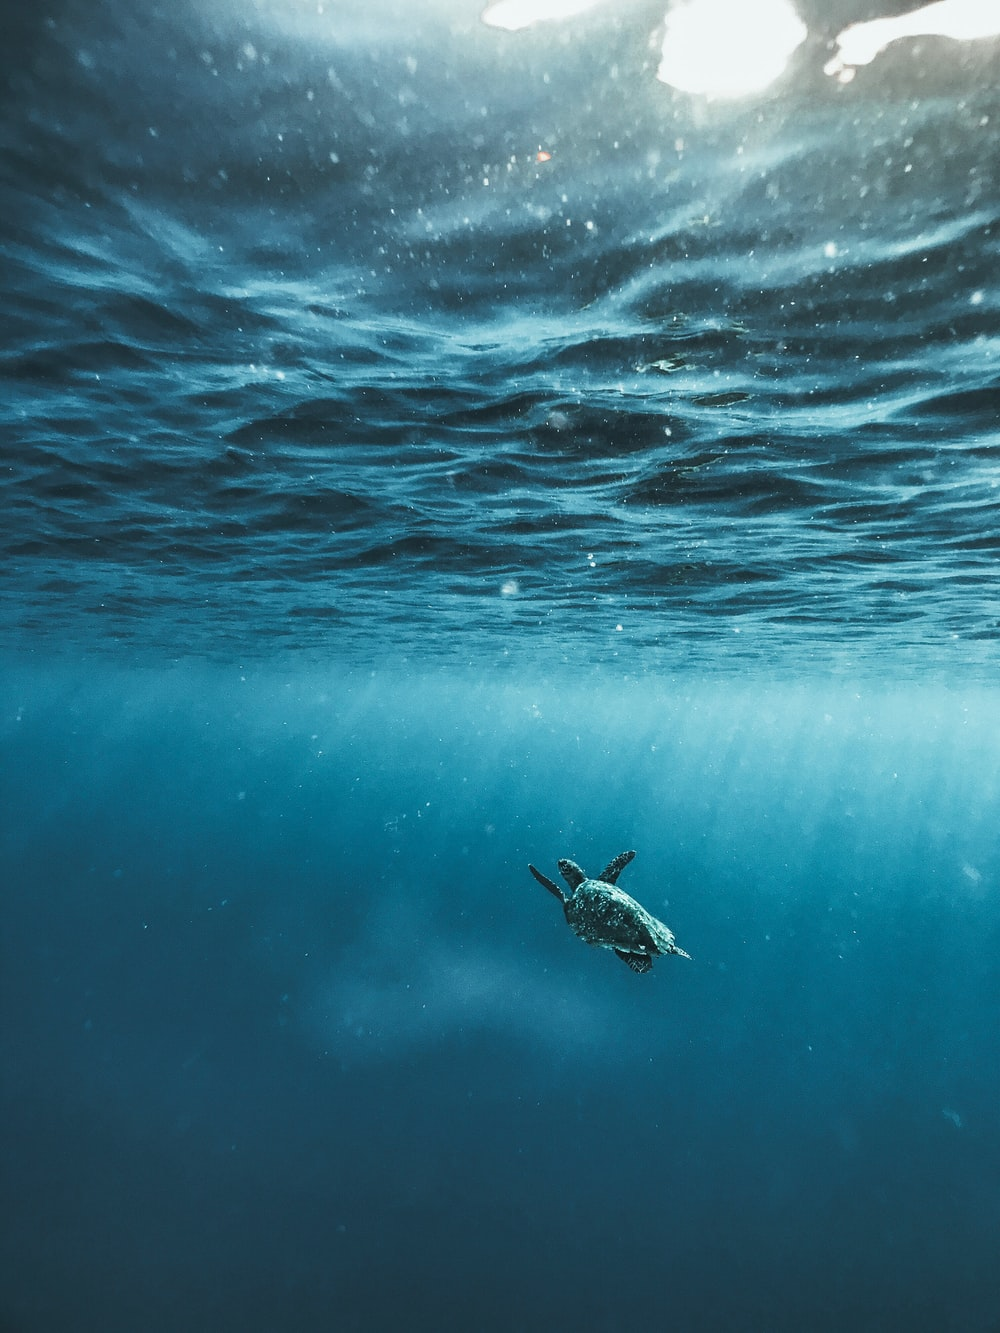 21+ Underwater Images   Download Free Images & Stock Photos on ...